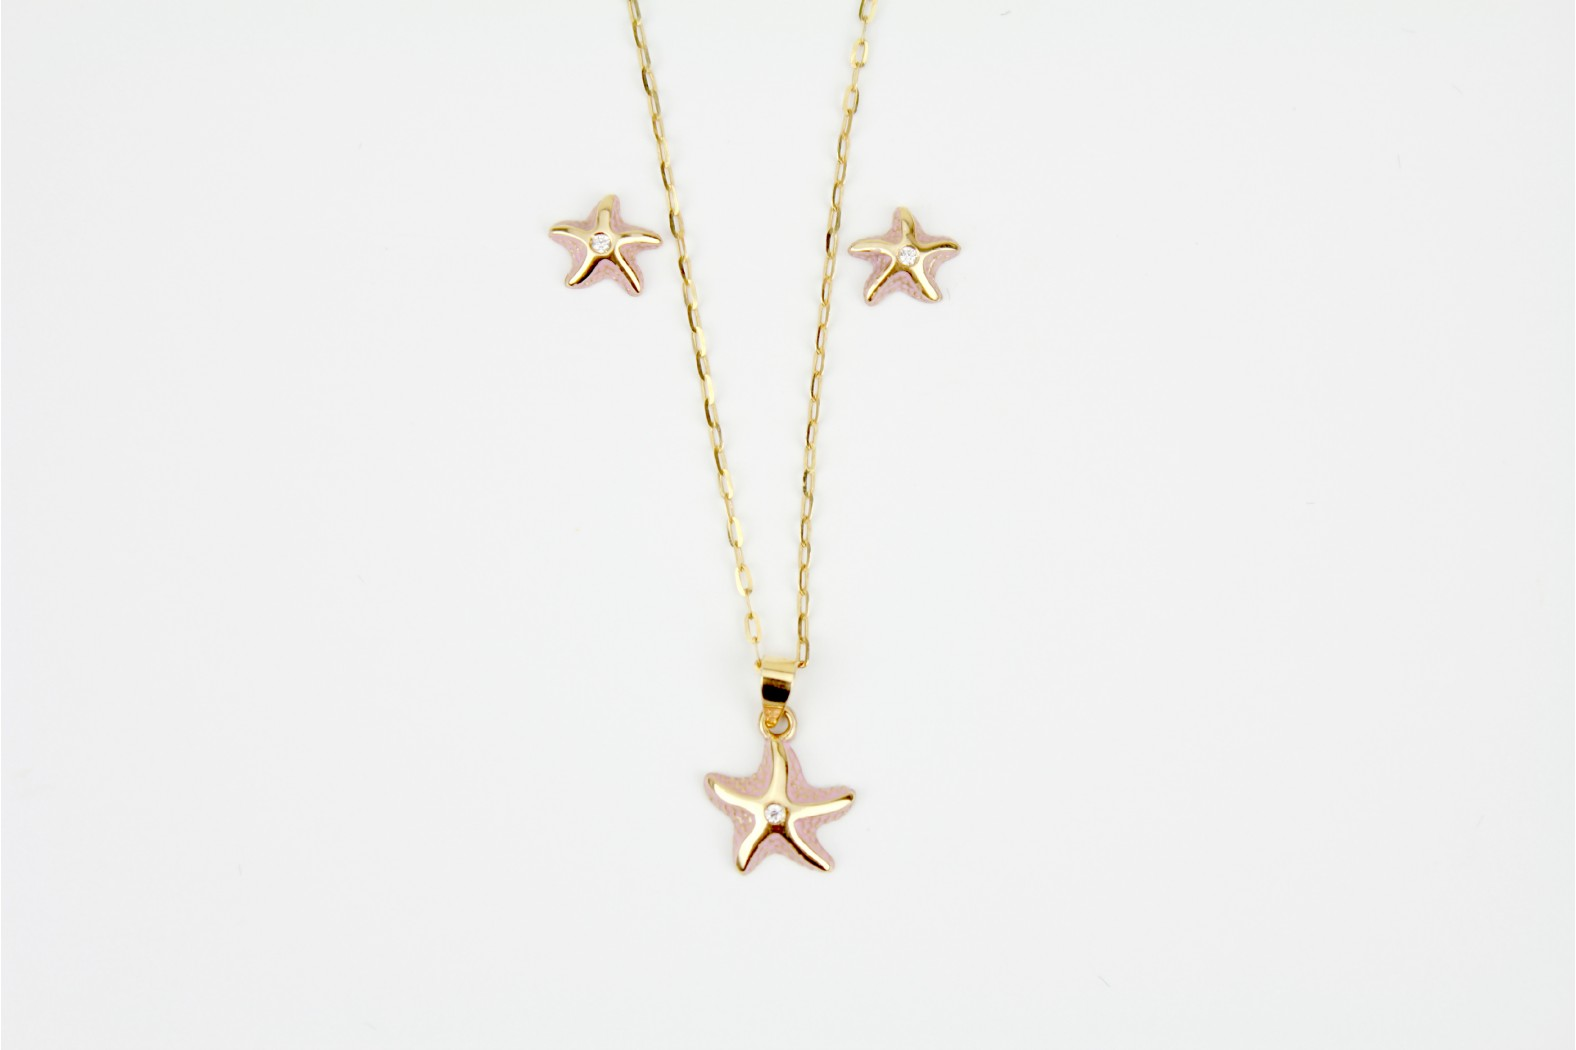 Starfish design pendant with complementary stud earrings having central diamond elements on matching 18inch or 45cm chain.